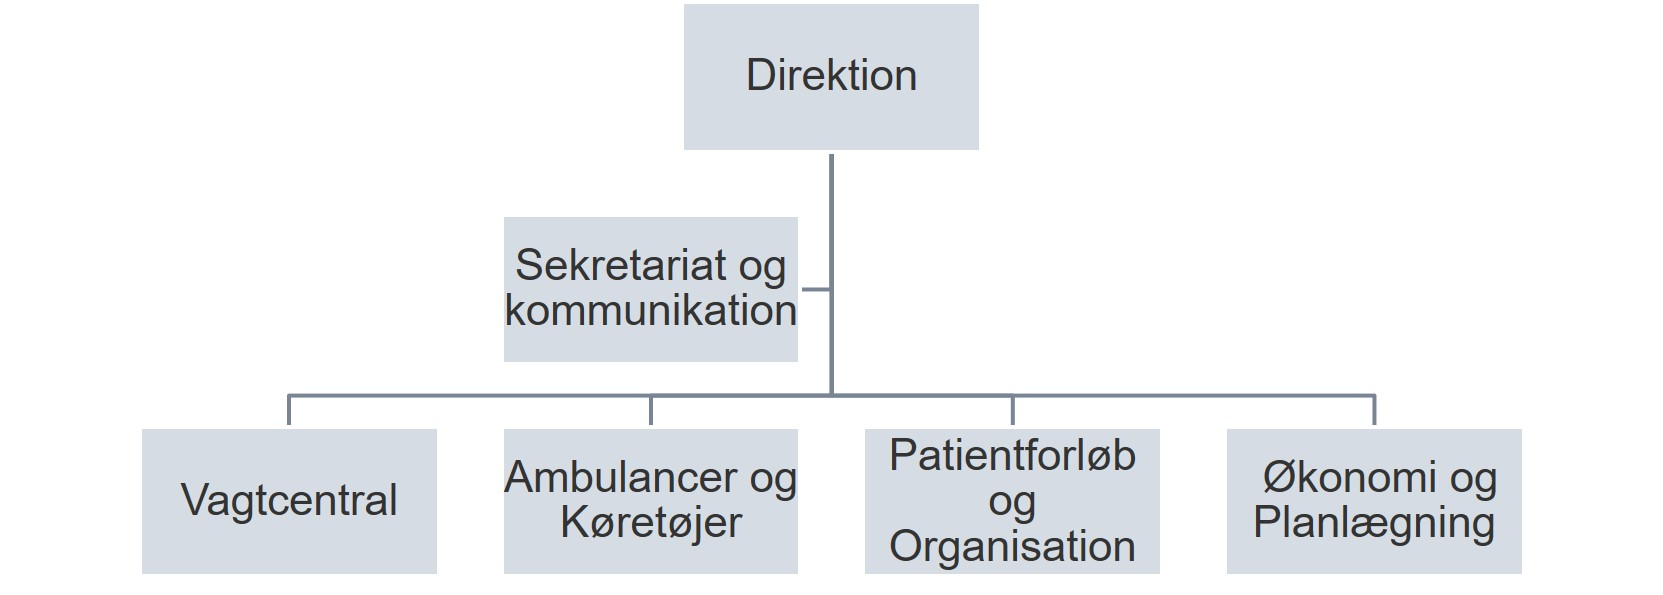 Organisationsdiagram pr. 16. april 2020.jpg